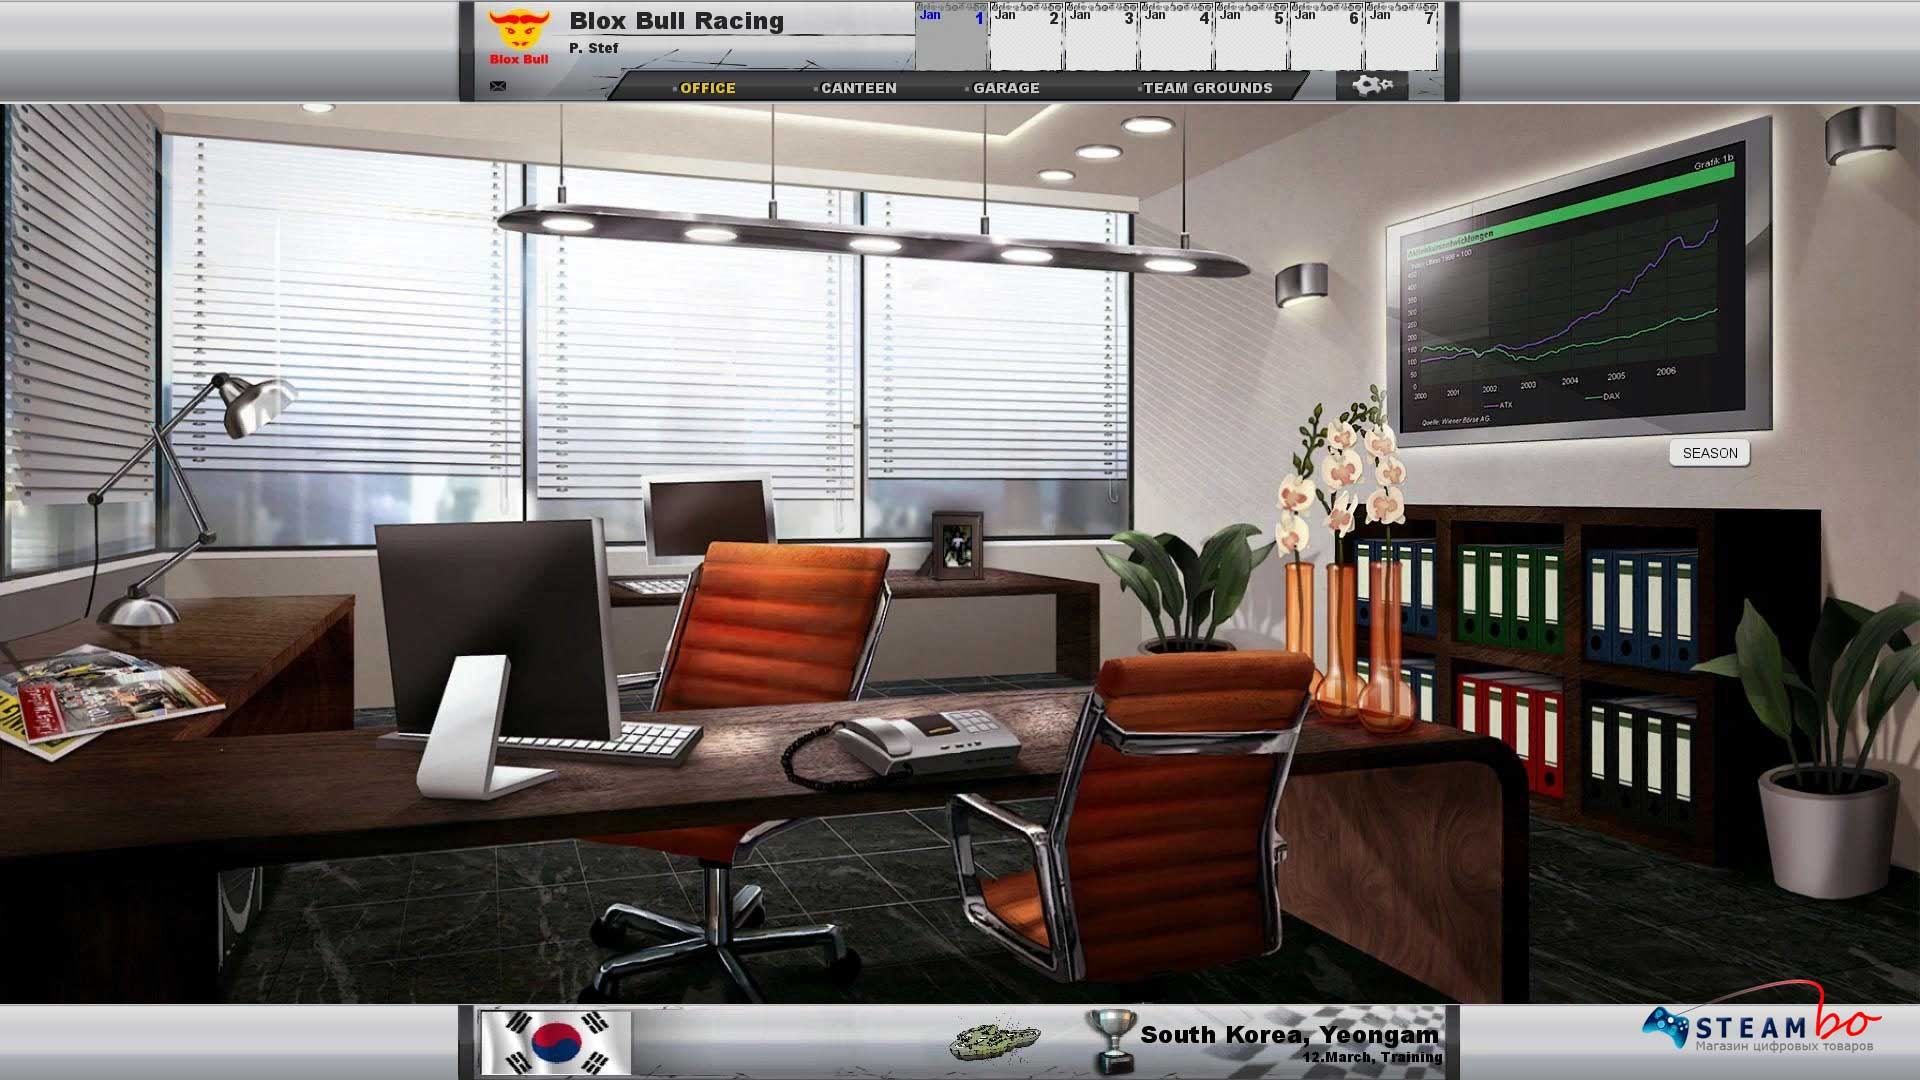 Racing Manager 2014 Region Free (Steam Gift/Key)